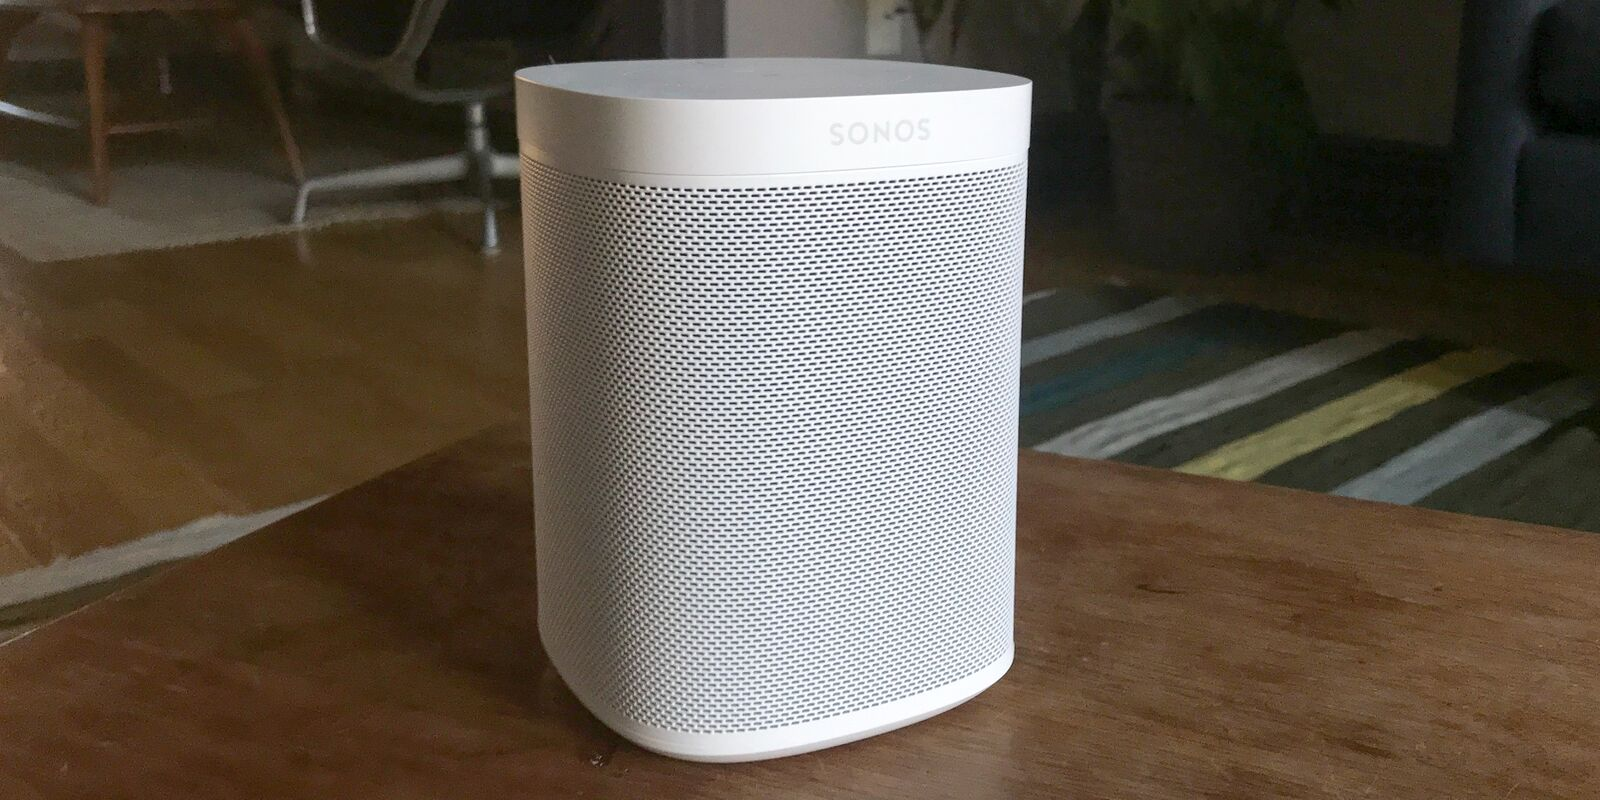 sonos one top 2x1 fullres 6061 preview